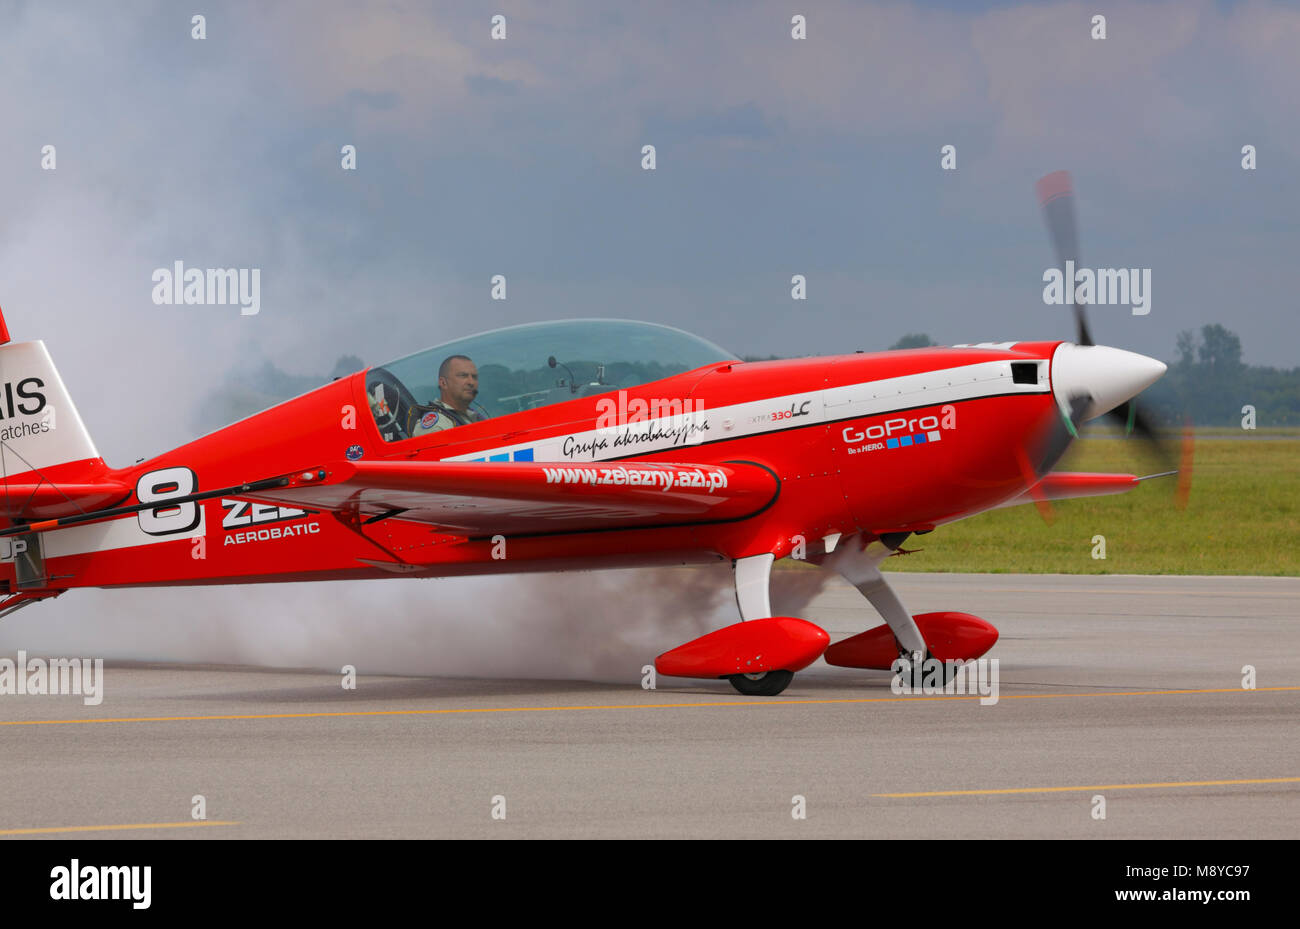 The Extra 330 LC of the Zelazny Aerobatic Team on runway during International Air Show at the 90th Jubilee of The - Stock Image